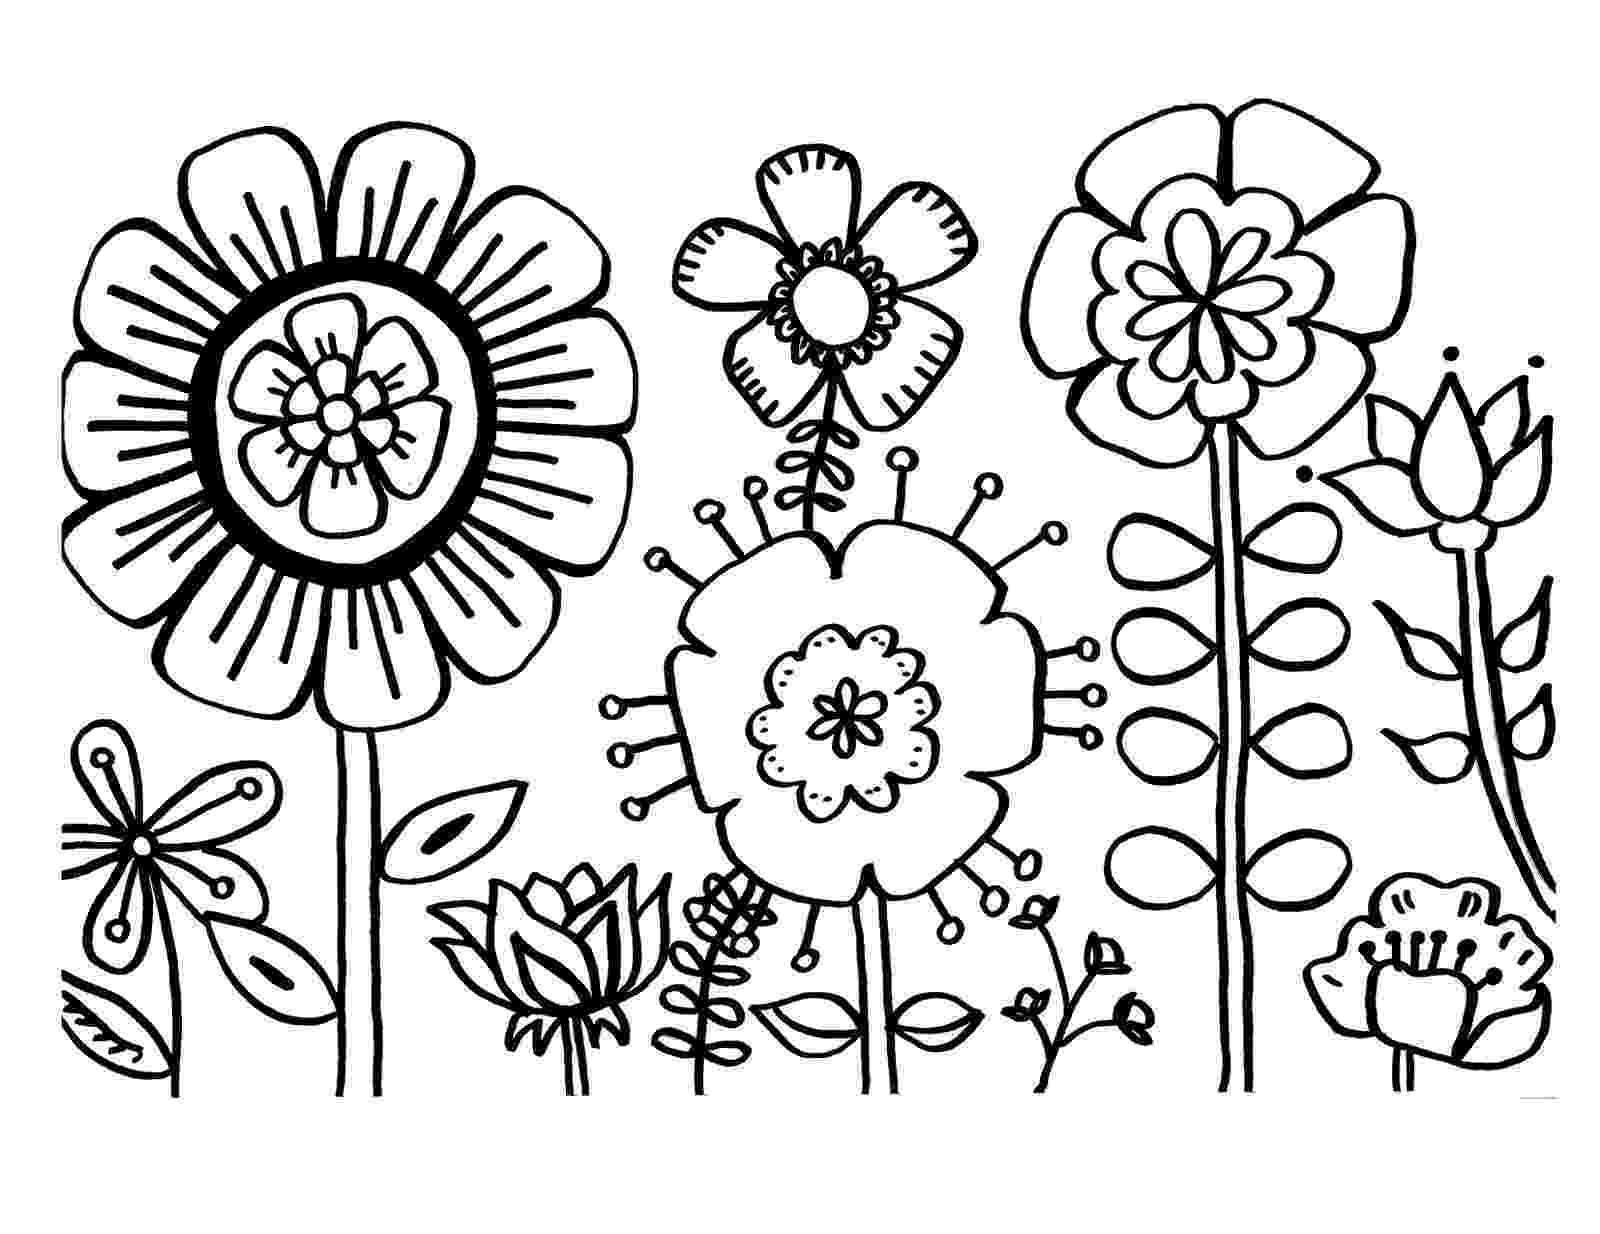 printable flower coloring pages free printable flower coloring pages for kids best flower printable coloring pages